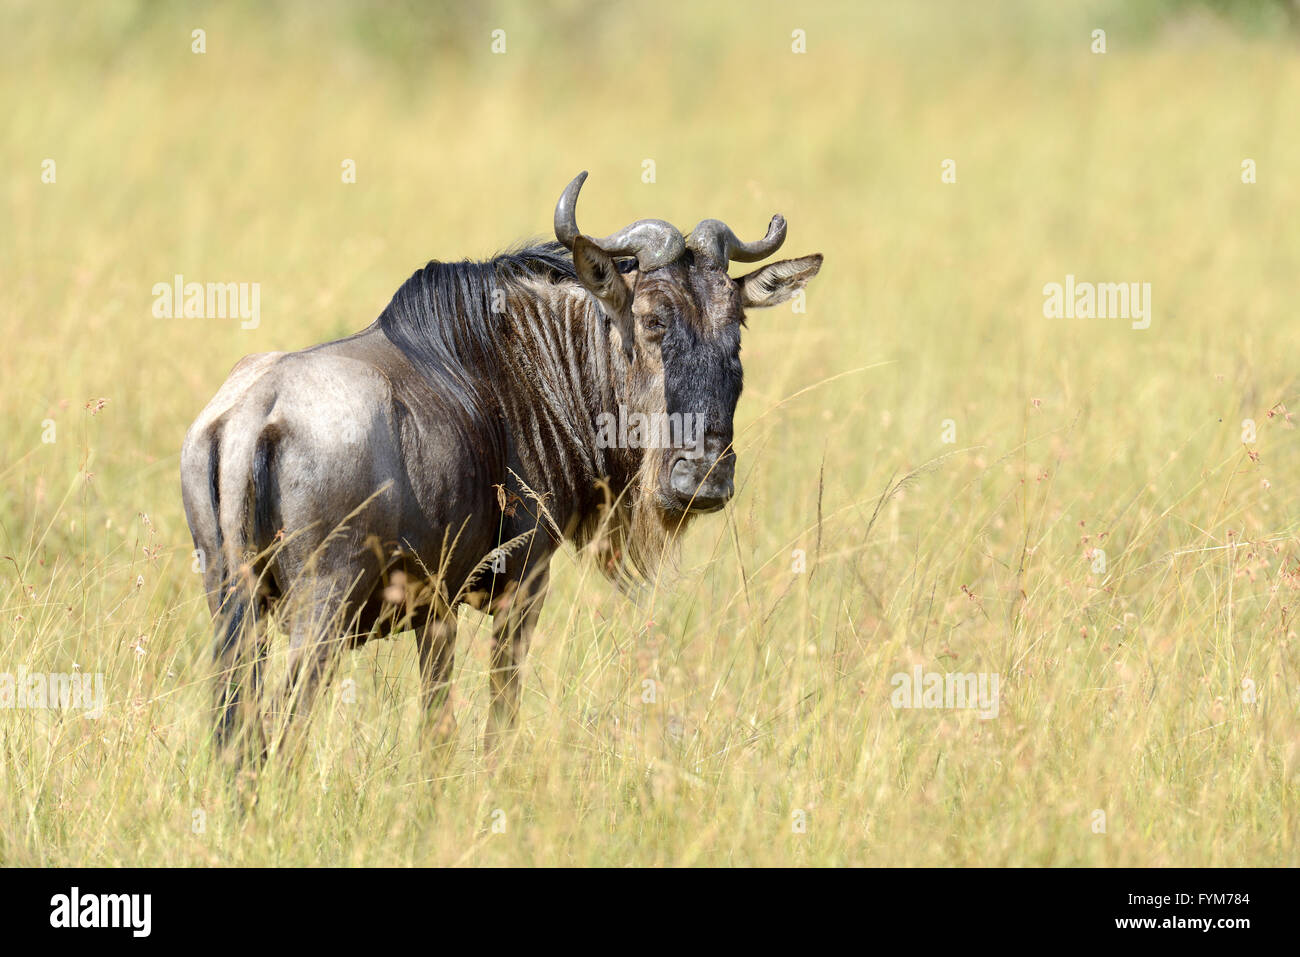 Portrait of a wildebeest, National park of Kenya, Africa - Stock Image